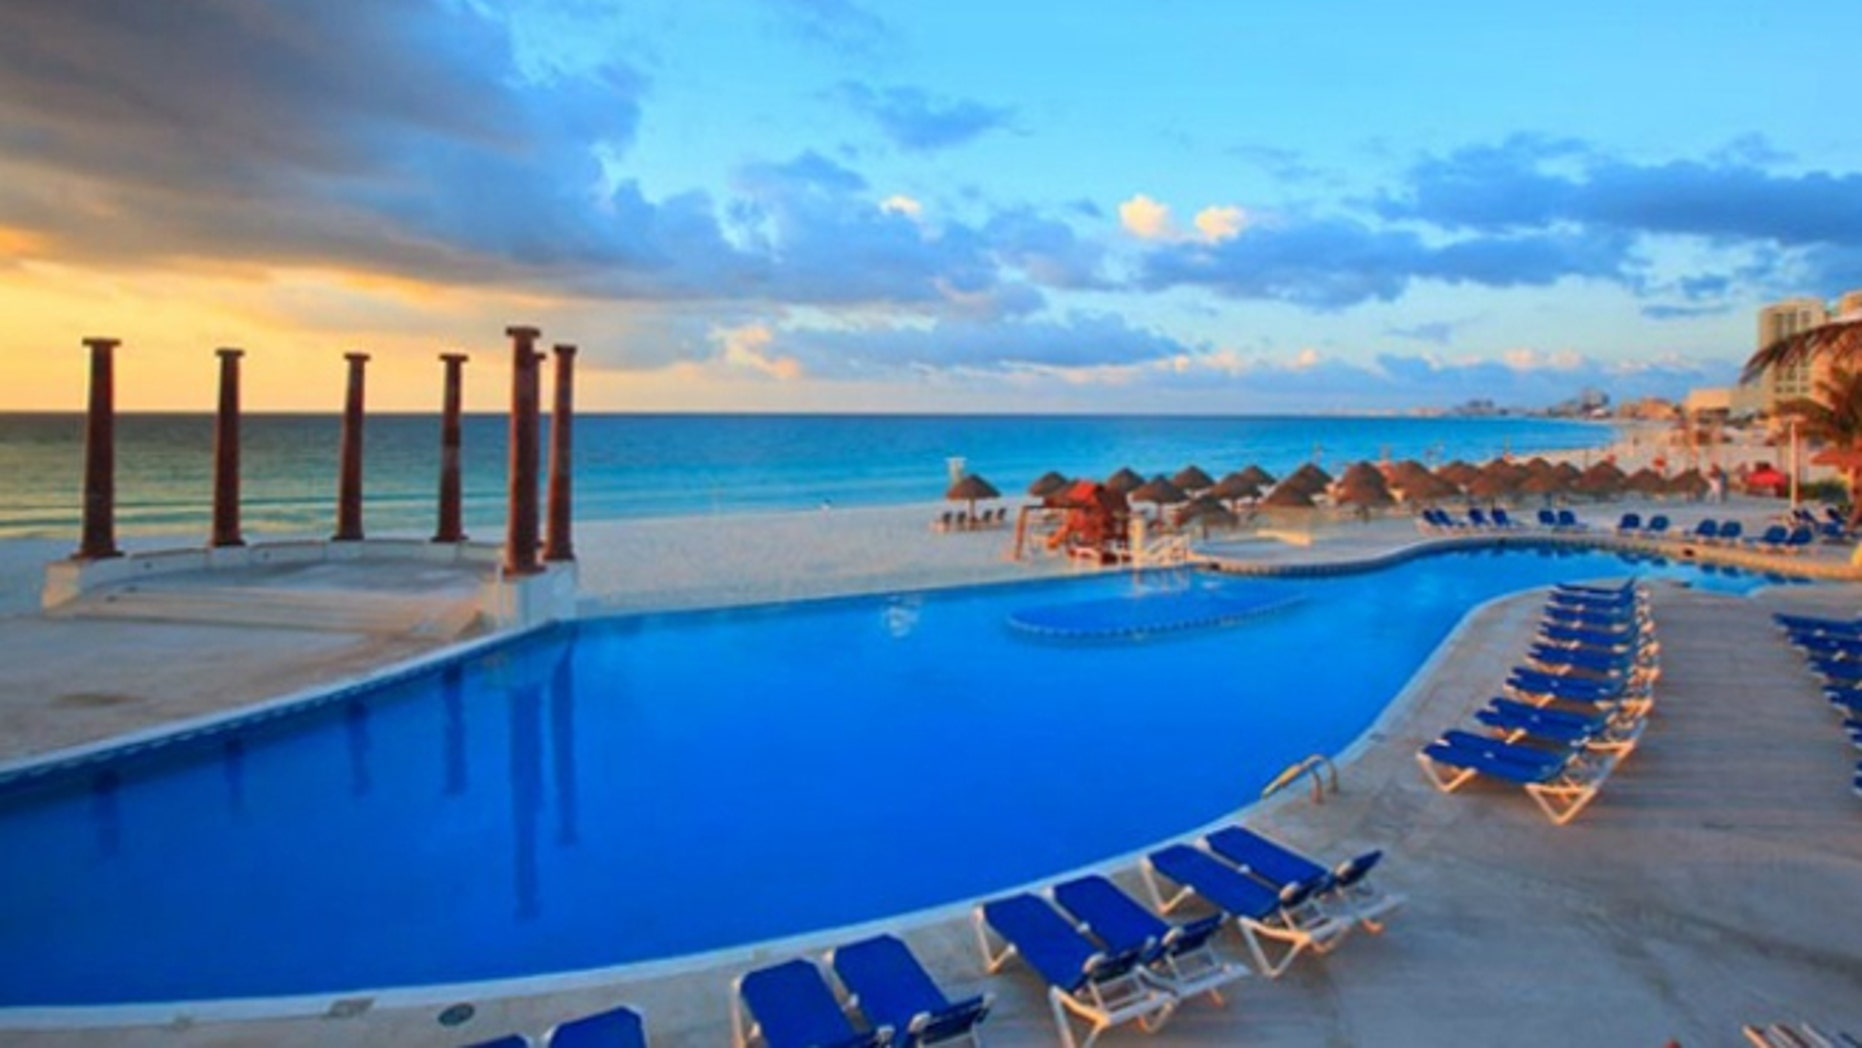 Krystal Cancun makes the most of its Riviera Maya location: The pool runs lengthwise along the sand, and there's even a beachfront infinity whirlpool.